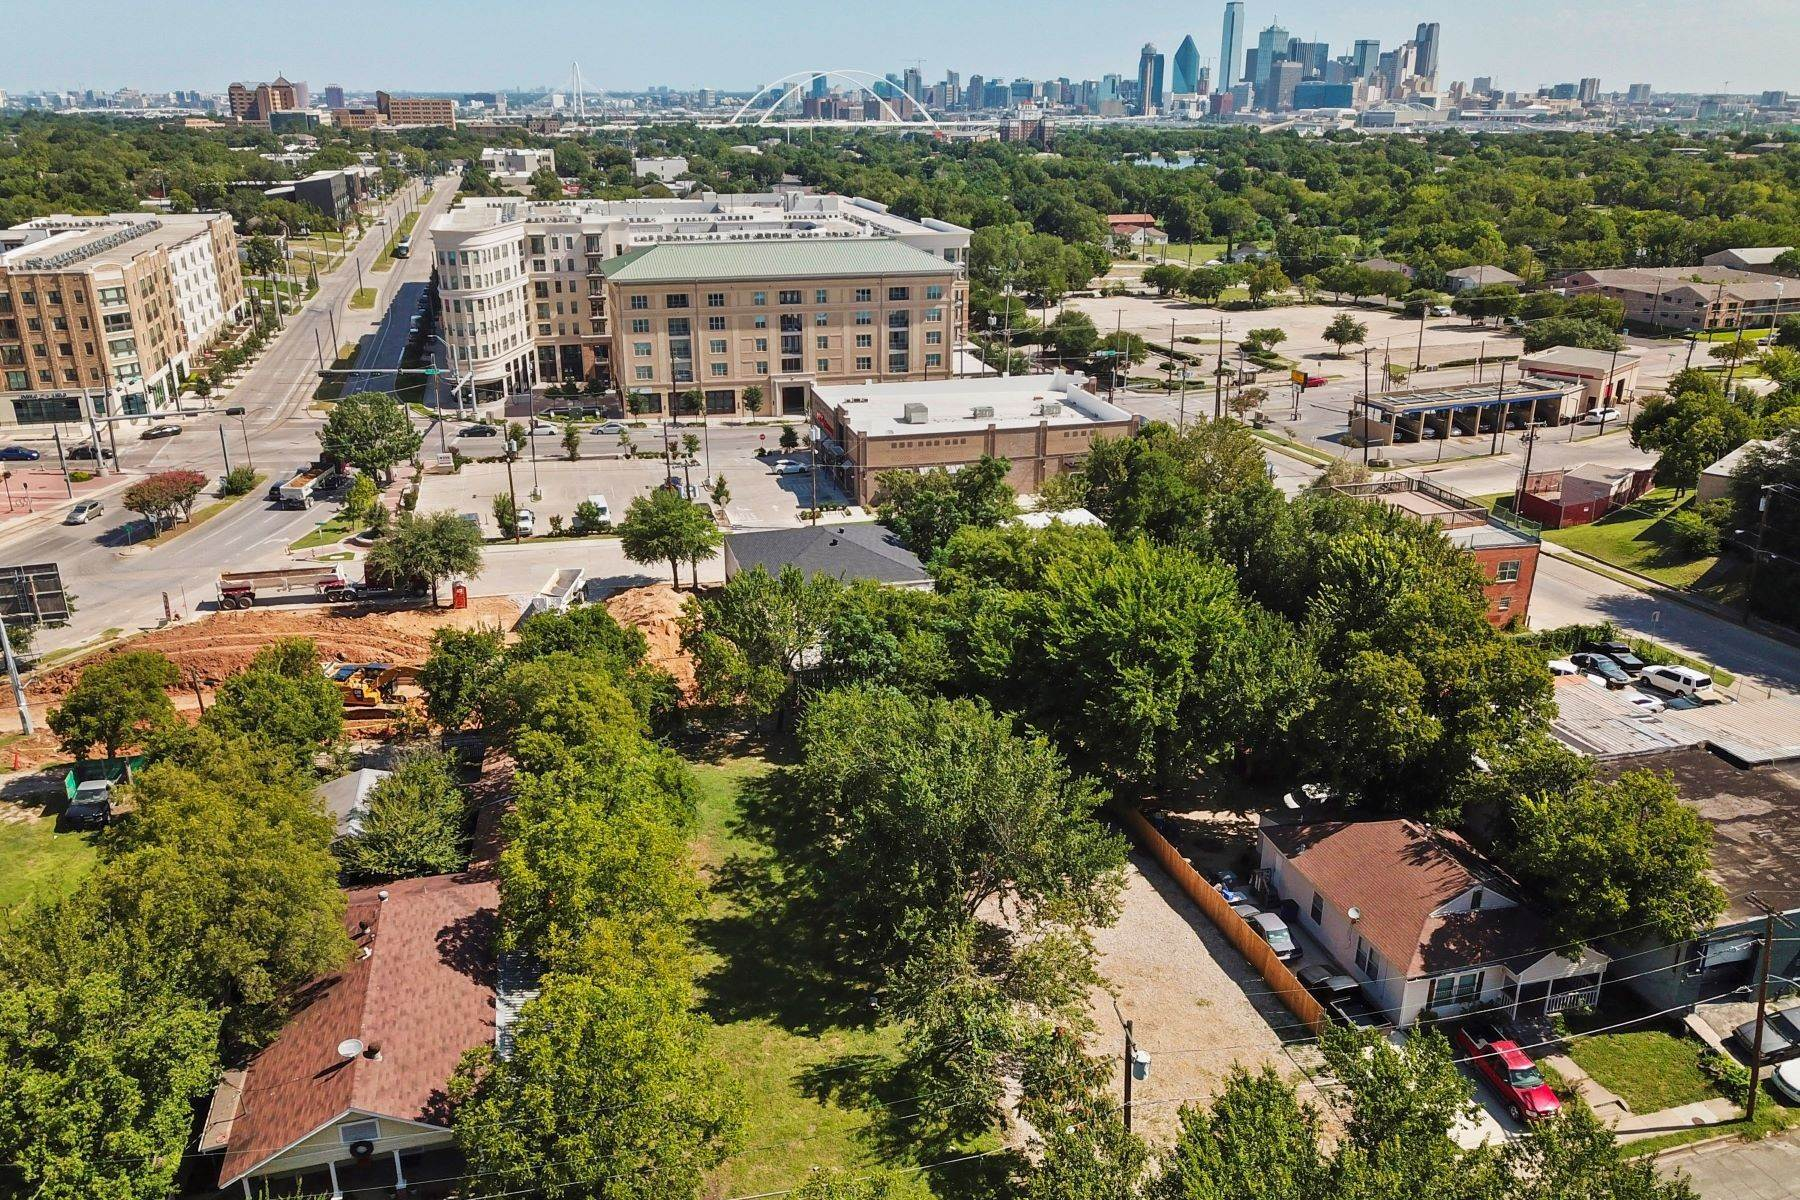 Land for Sale at Bishop Arts District Townhome Lot 115 8th Street Dallas, Texas 75208 United States